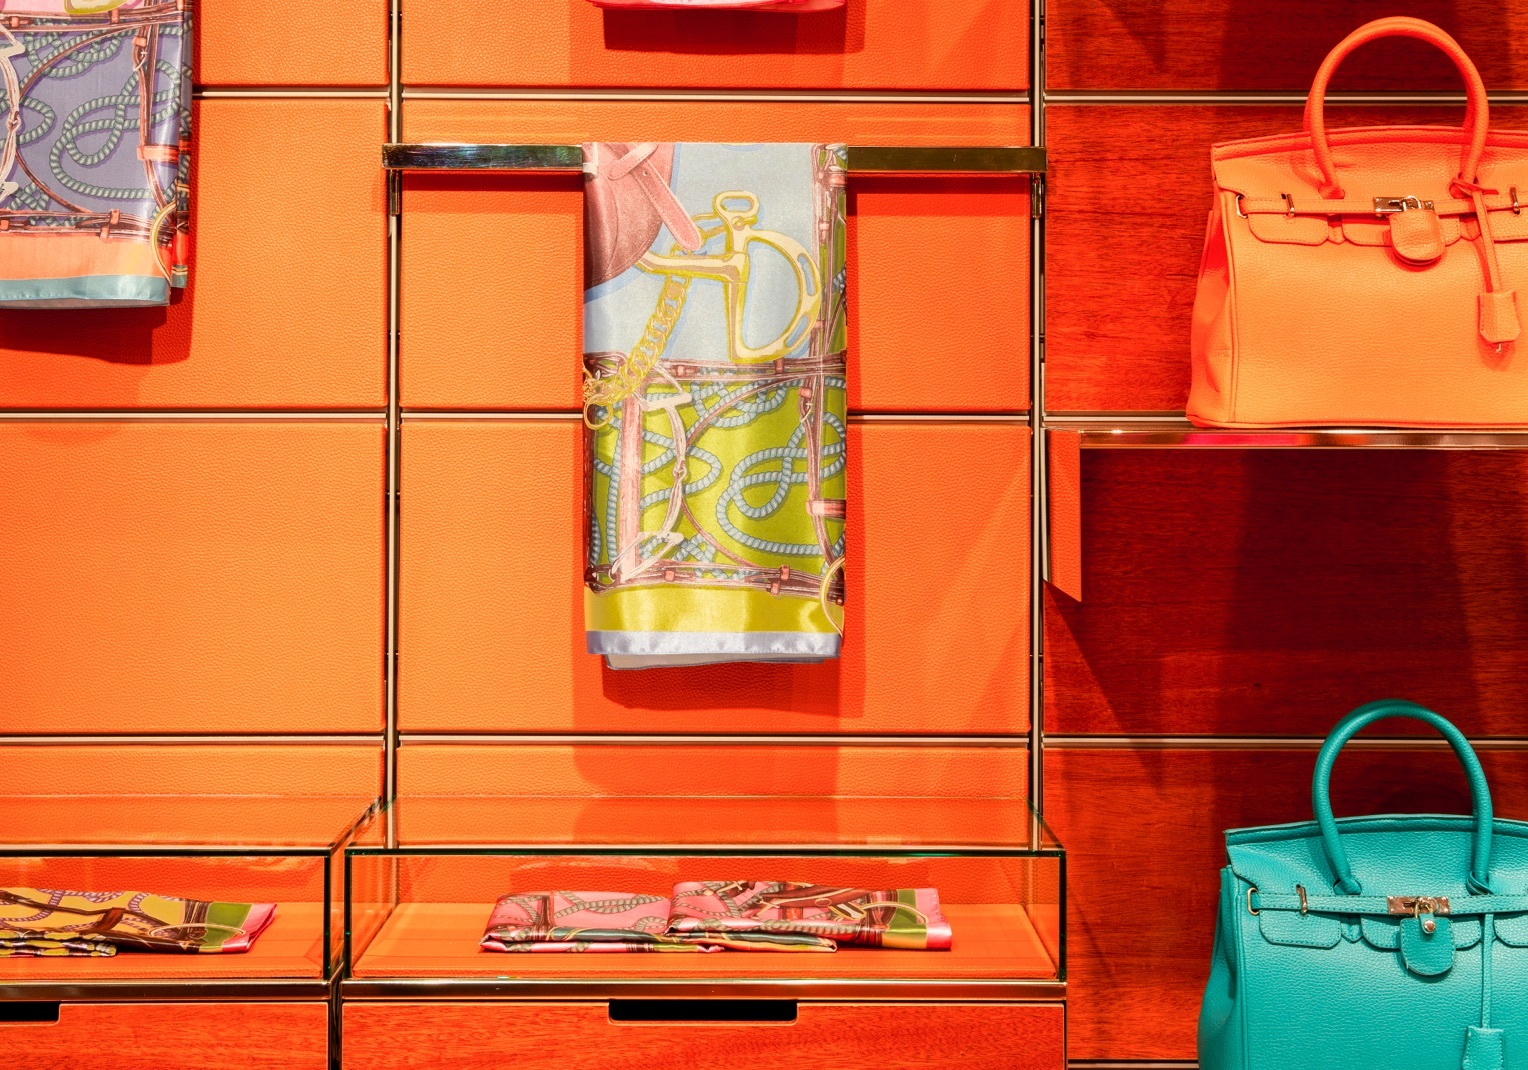 Bright orange panels decorate a wall holding golden shelves displaying various high end fabrics and purses.